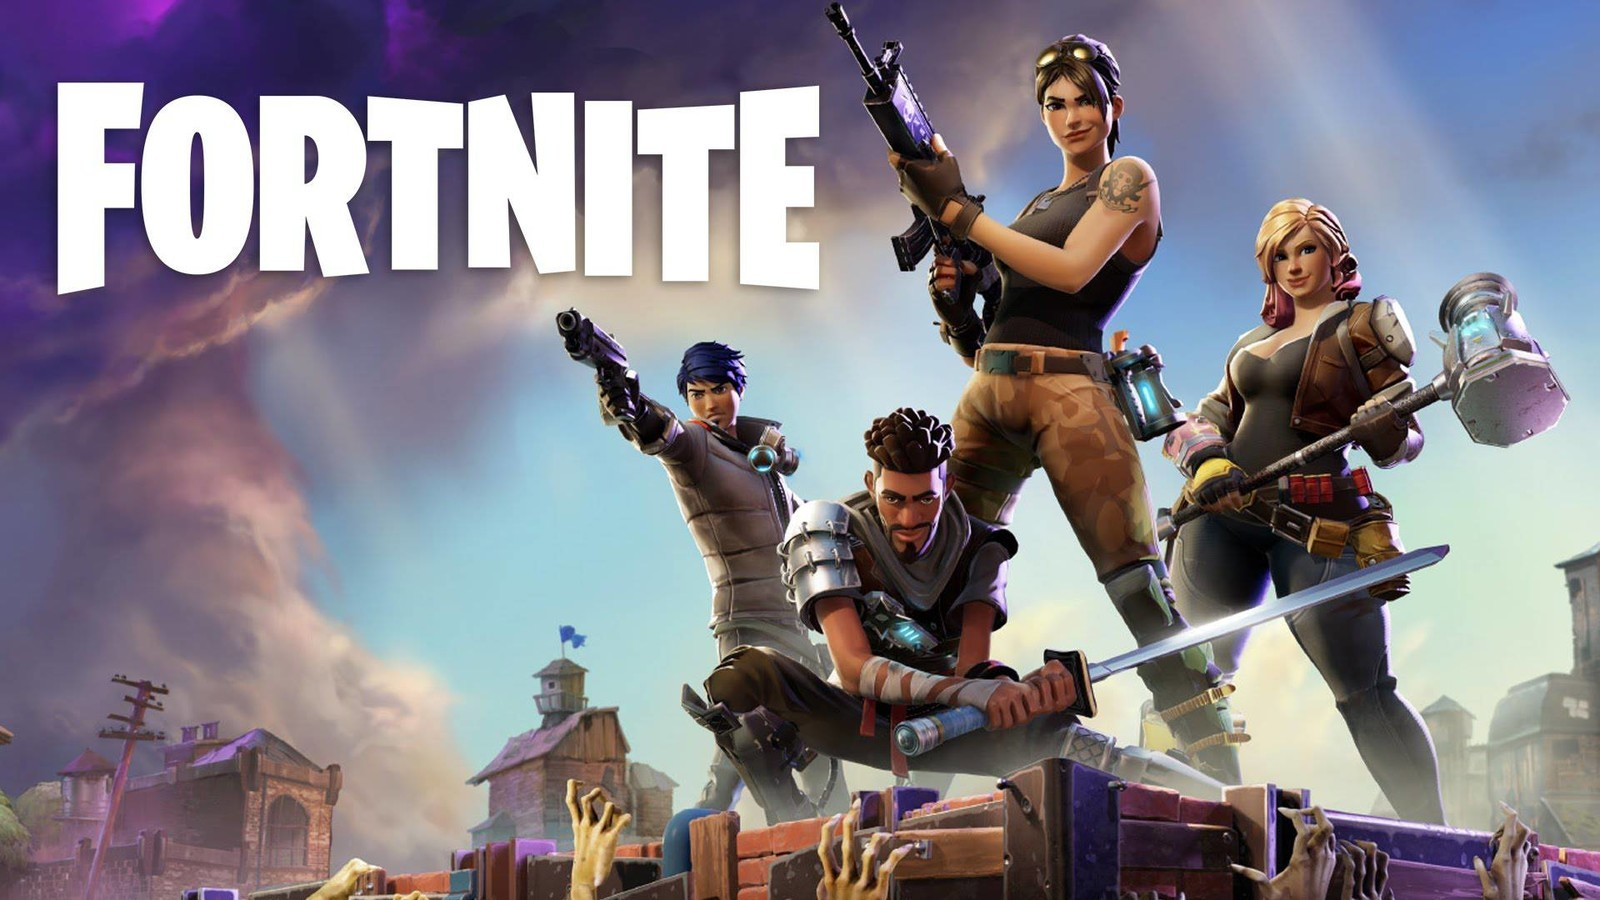 【EASY-APPS.NET FORTNITE】 Vbucks and Extra Vbucks FOR ANDROID IOS PC PLAYSTATION | 100% WORKING METHOD | GET UNLIMITED RESOURCES NOW